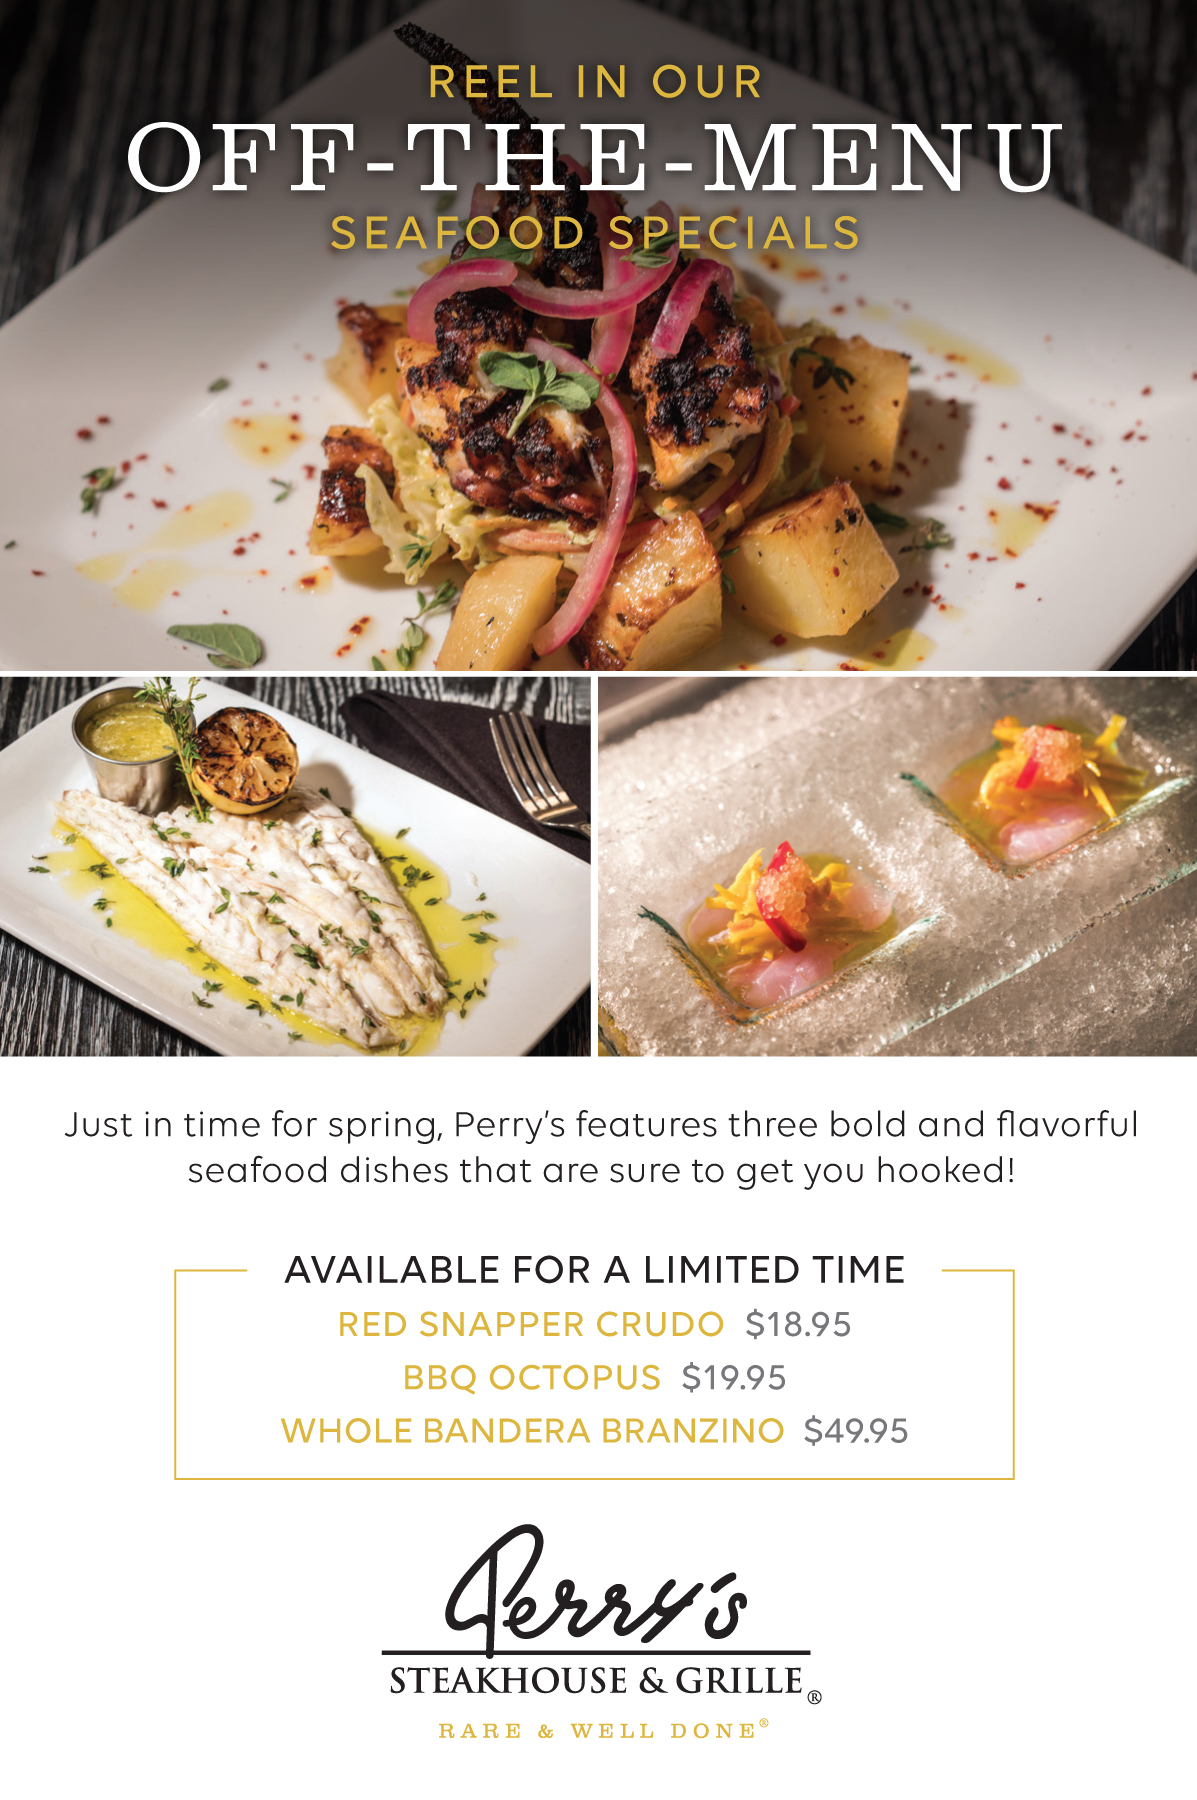 Perry's Off The Menu Seafood Specials for Spring